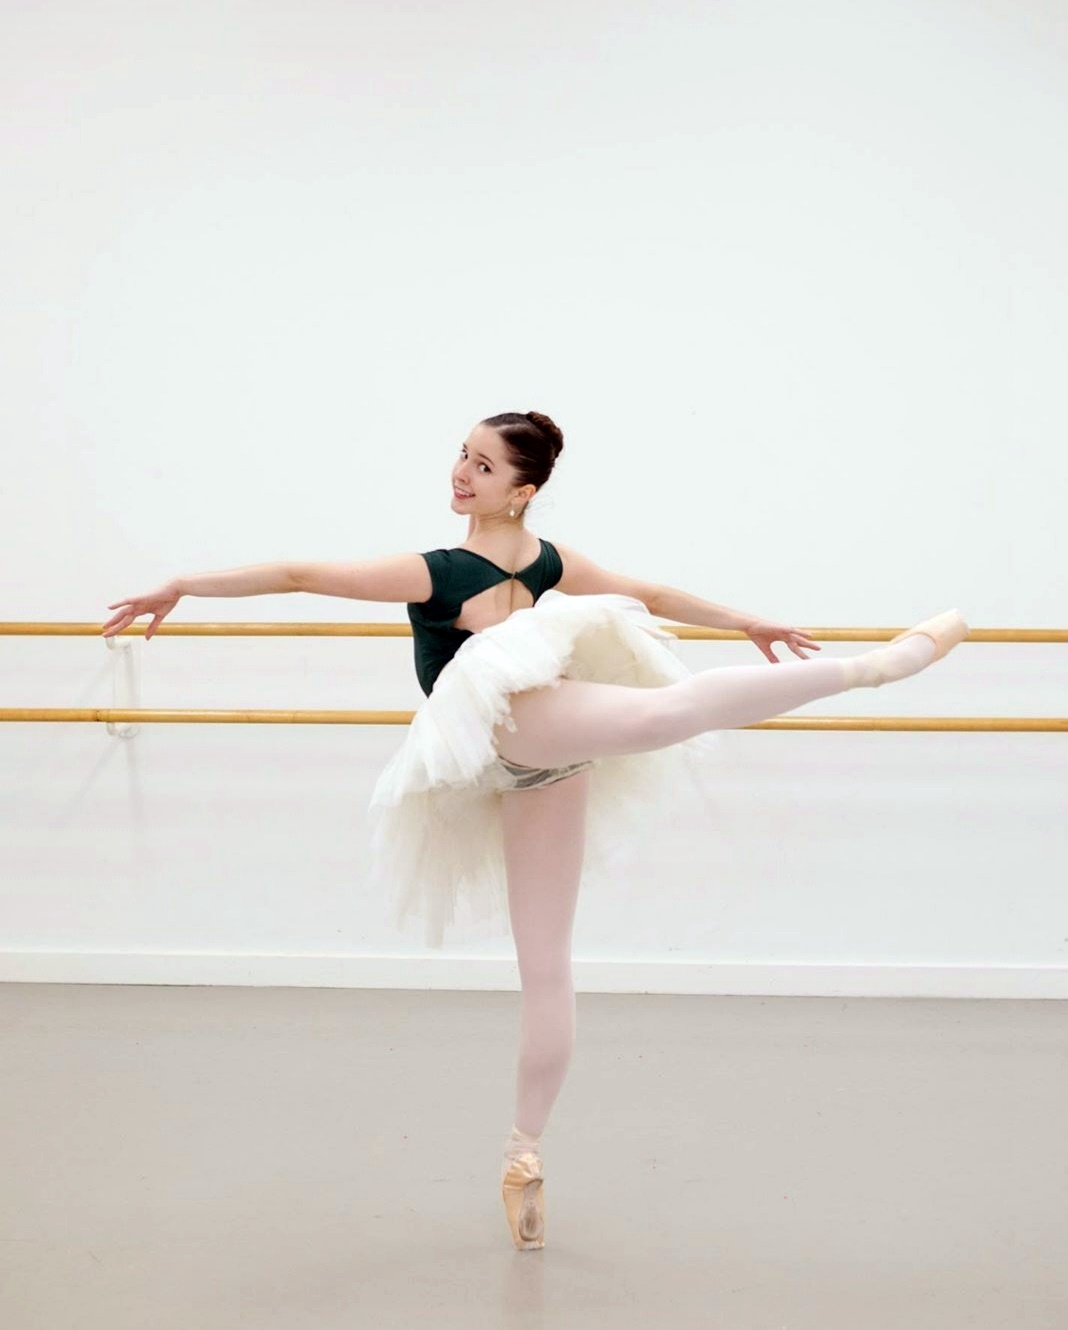 LDC Alumni, Suzanna Lathrum - Currently a member of Boston Ballet ll. Graduate of National Ballet School of Canada.